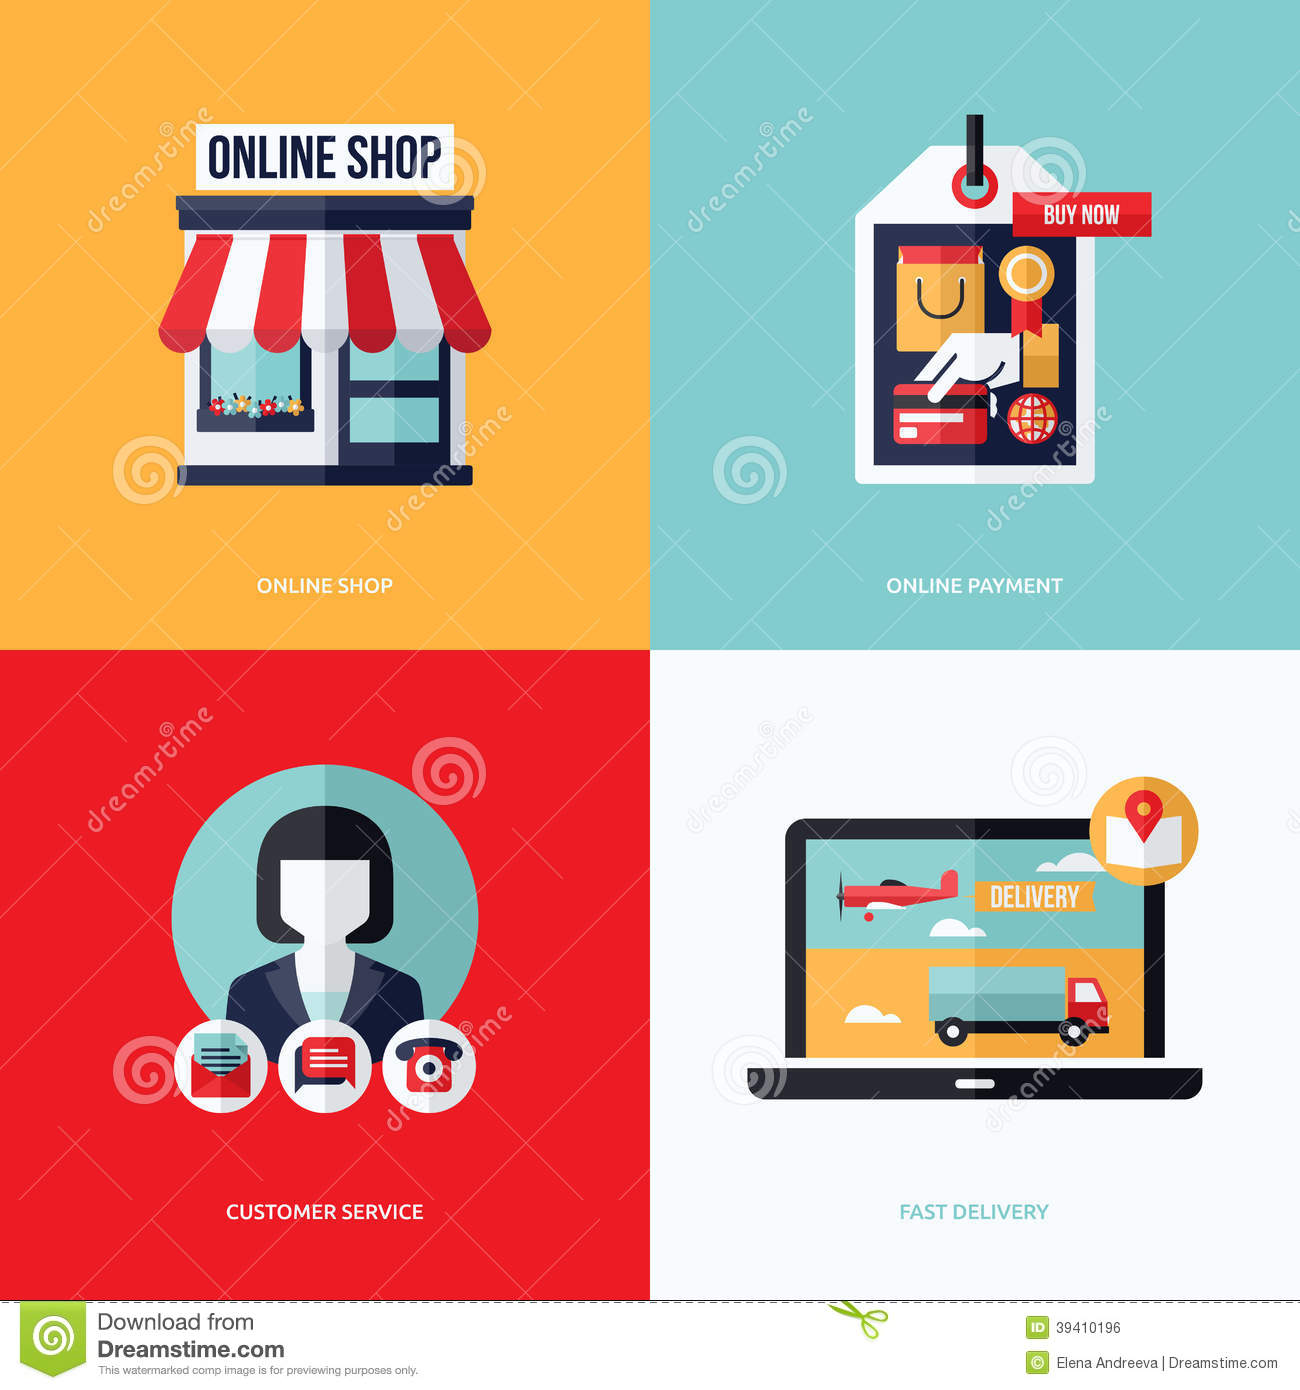 Online Decor Shopping Flat Vector Design With E Commerce And Online Shopping